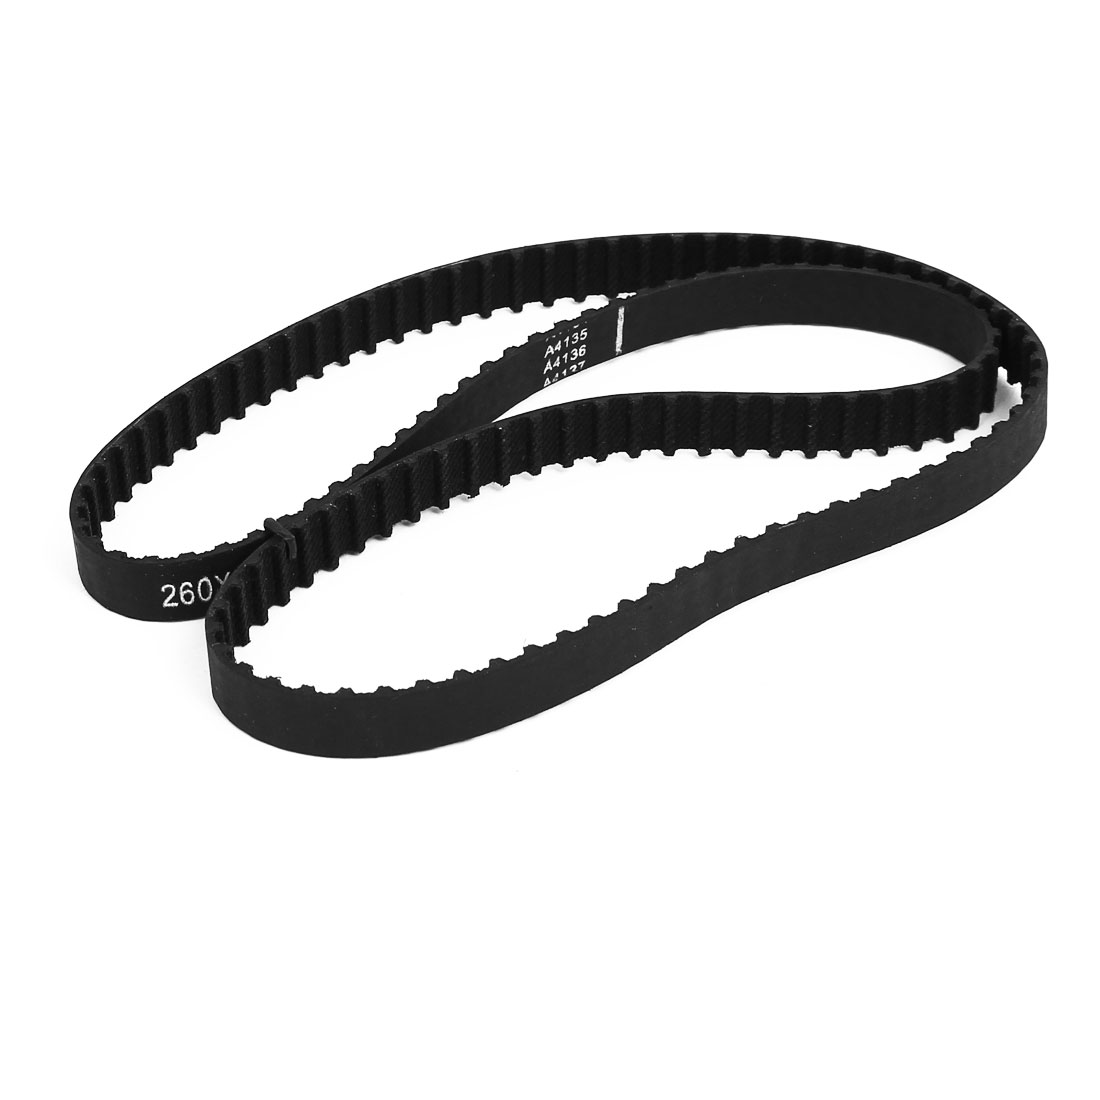 260XL Rubber Closed Loop Timing Belt Black 660mm Circumference 10mm Width